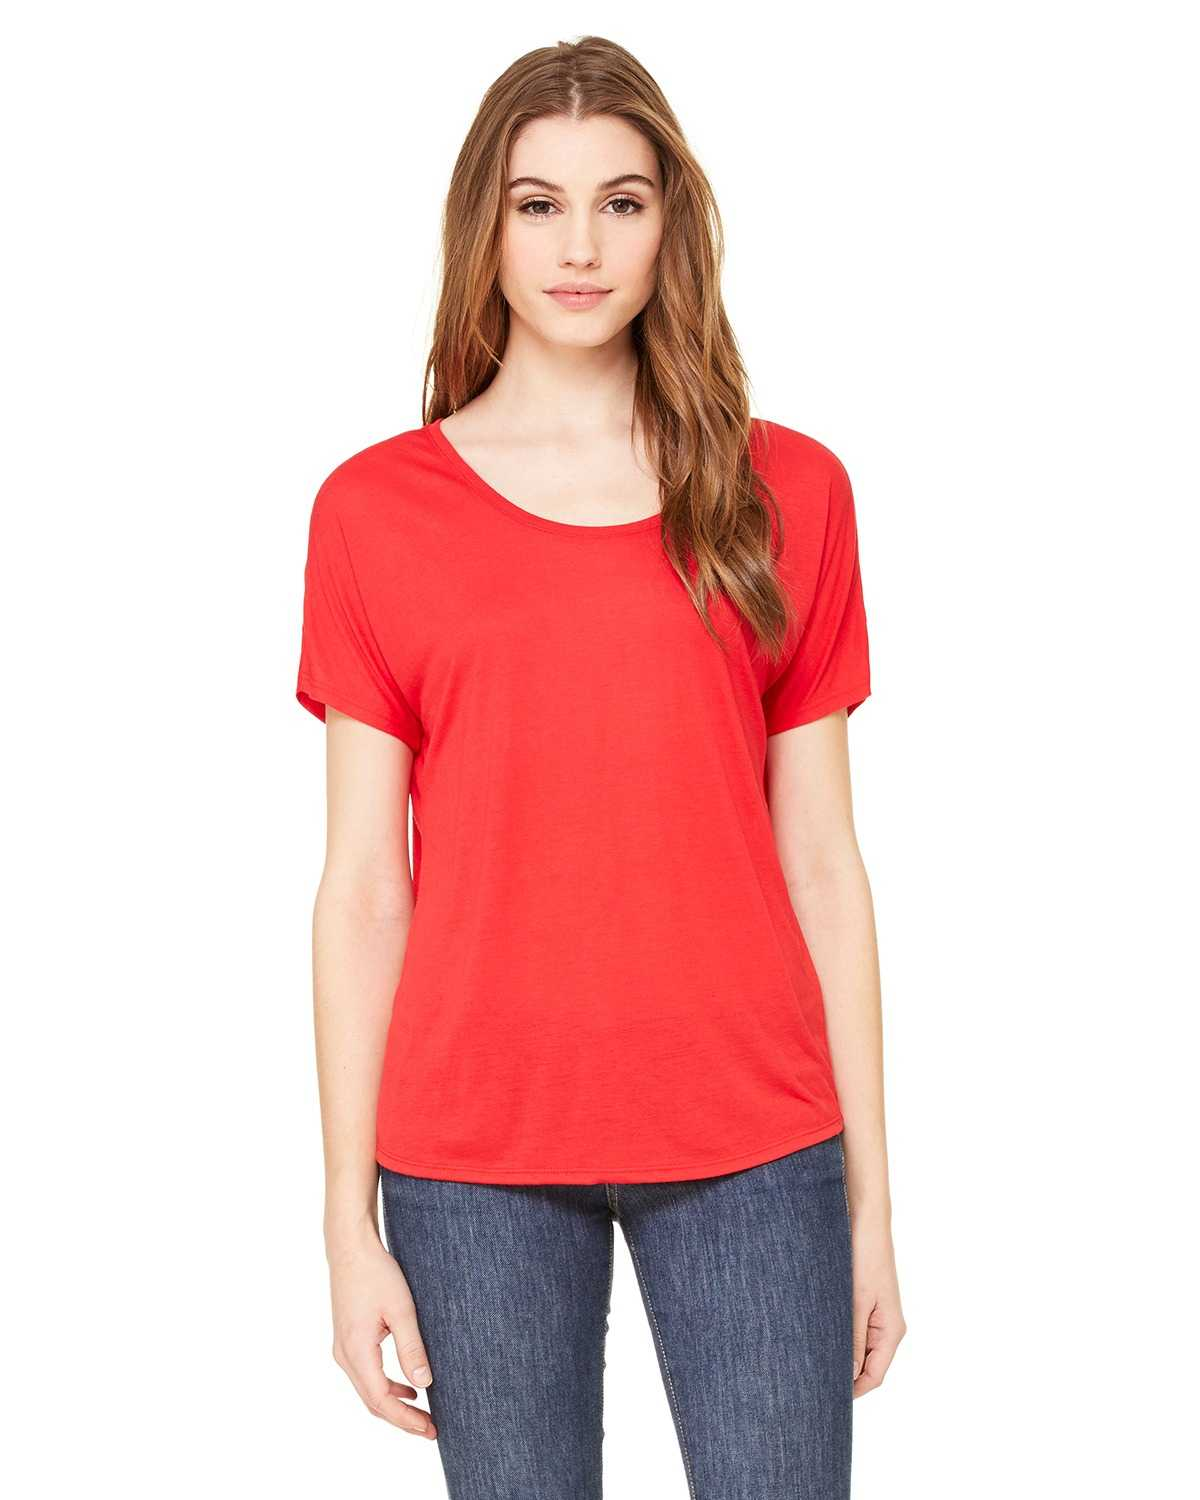 Bella Canvas 8816 Ladies Slouchy T Shirt